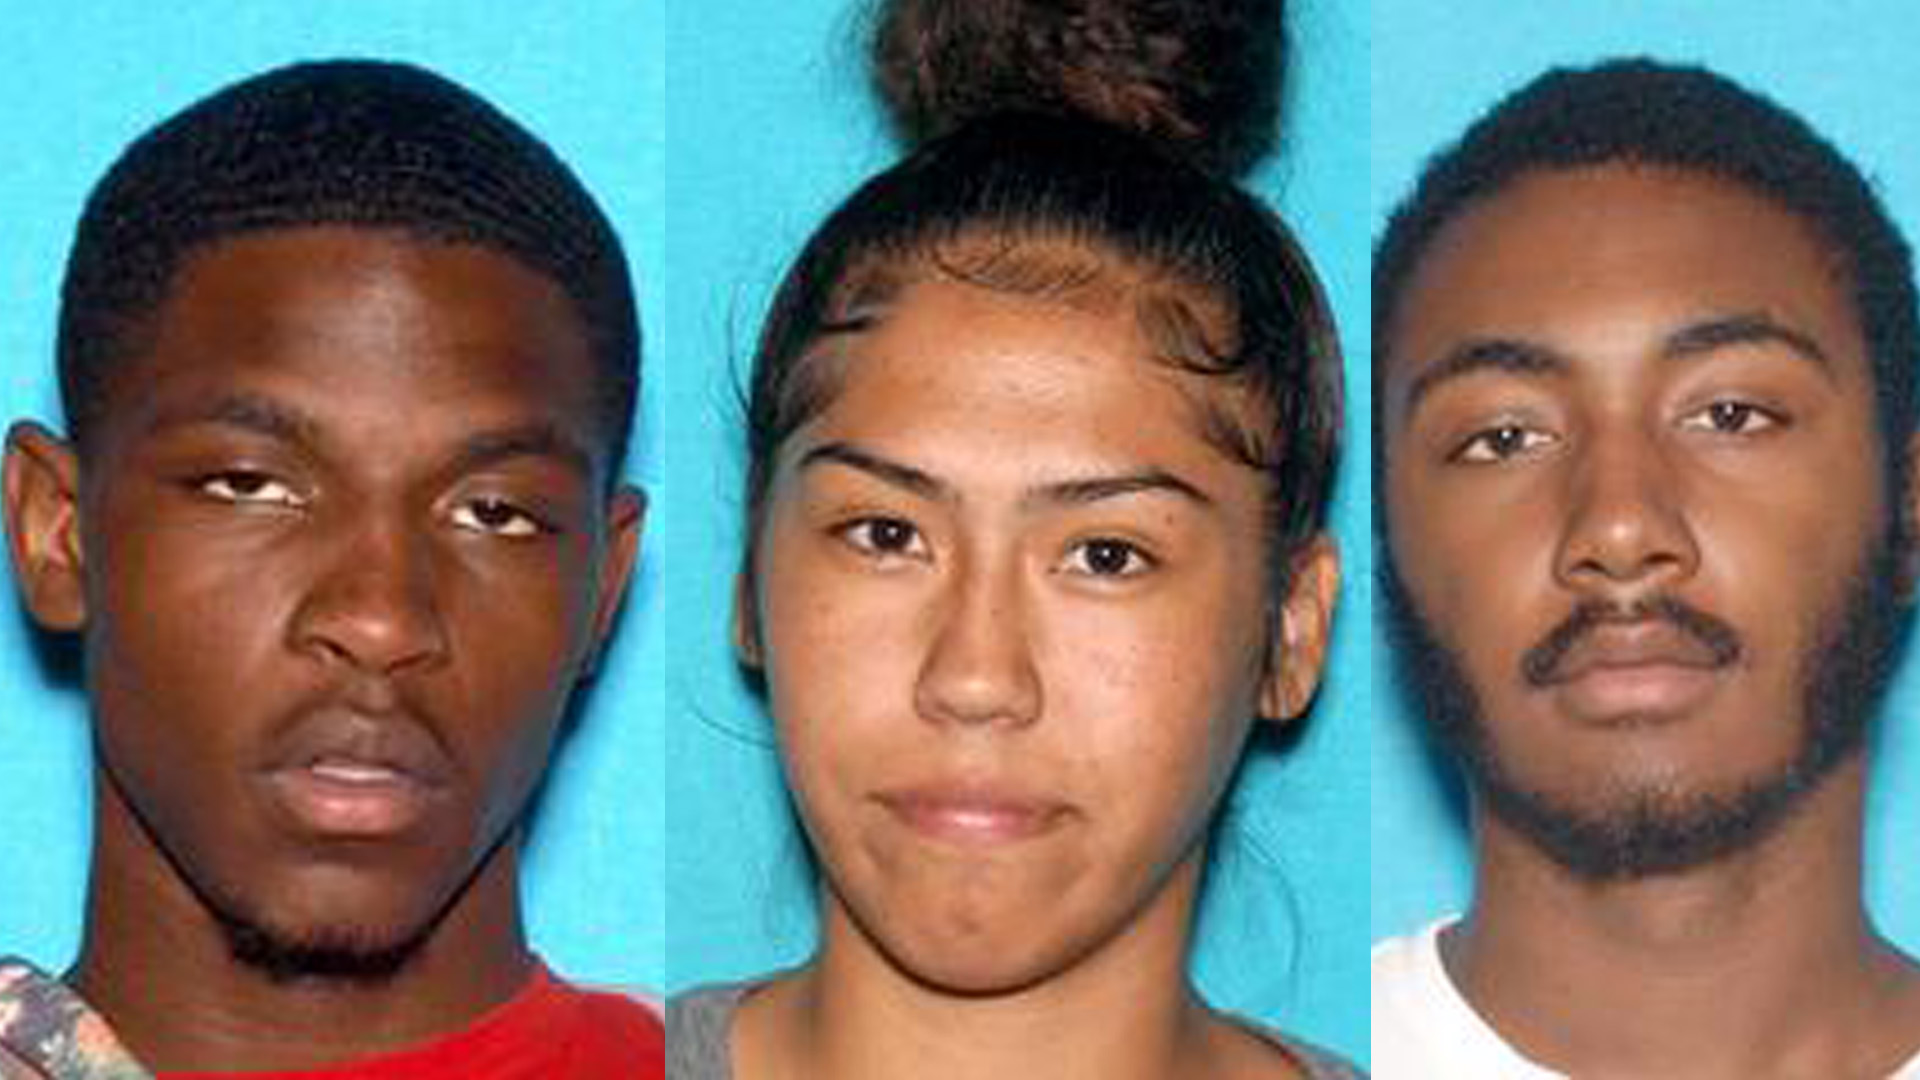 Three individuals who were arrested on charges of residential burglary in La Canada Flintridge are seen in booking photos released by LASD on Nov. 15, 2019.